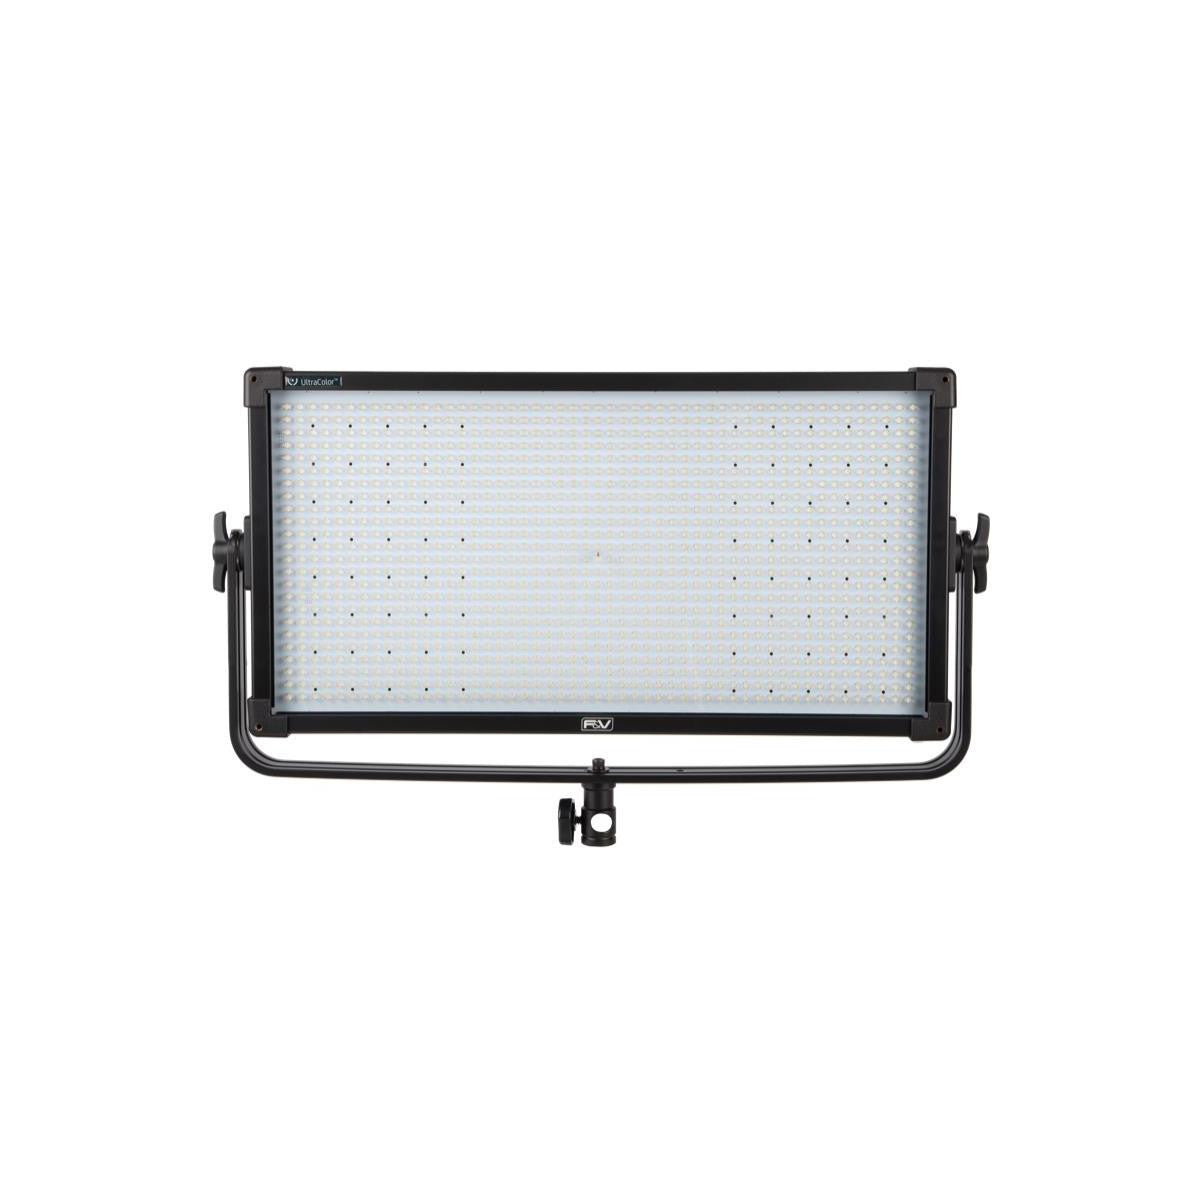 F&V Z1200S UltraColor Bi-color LED Studio Panel (V-mount) 109031080231